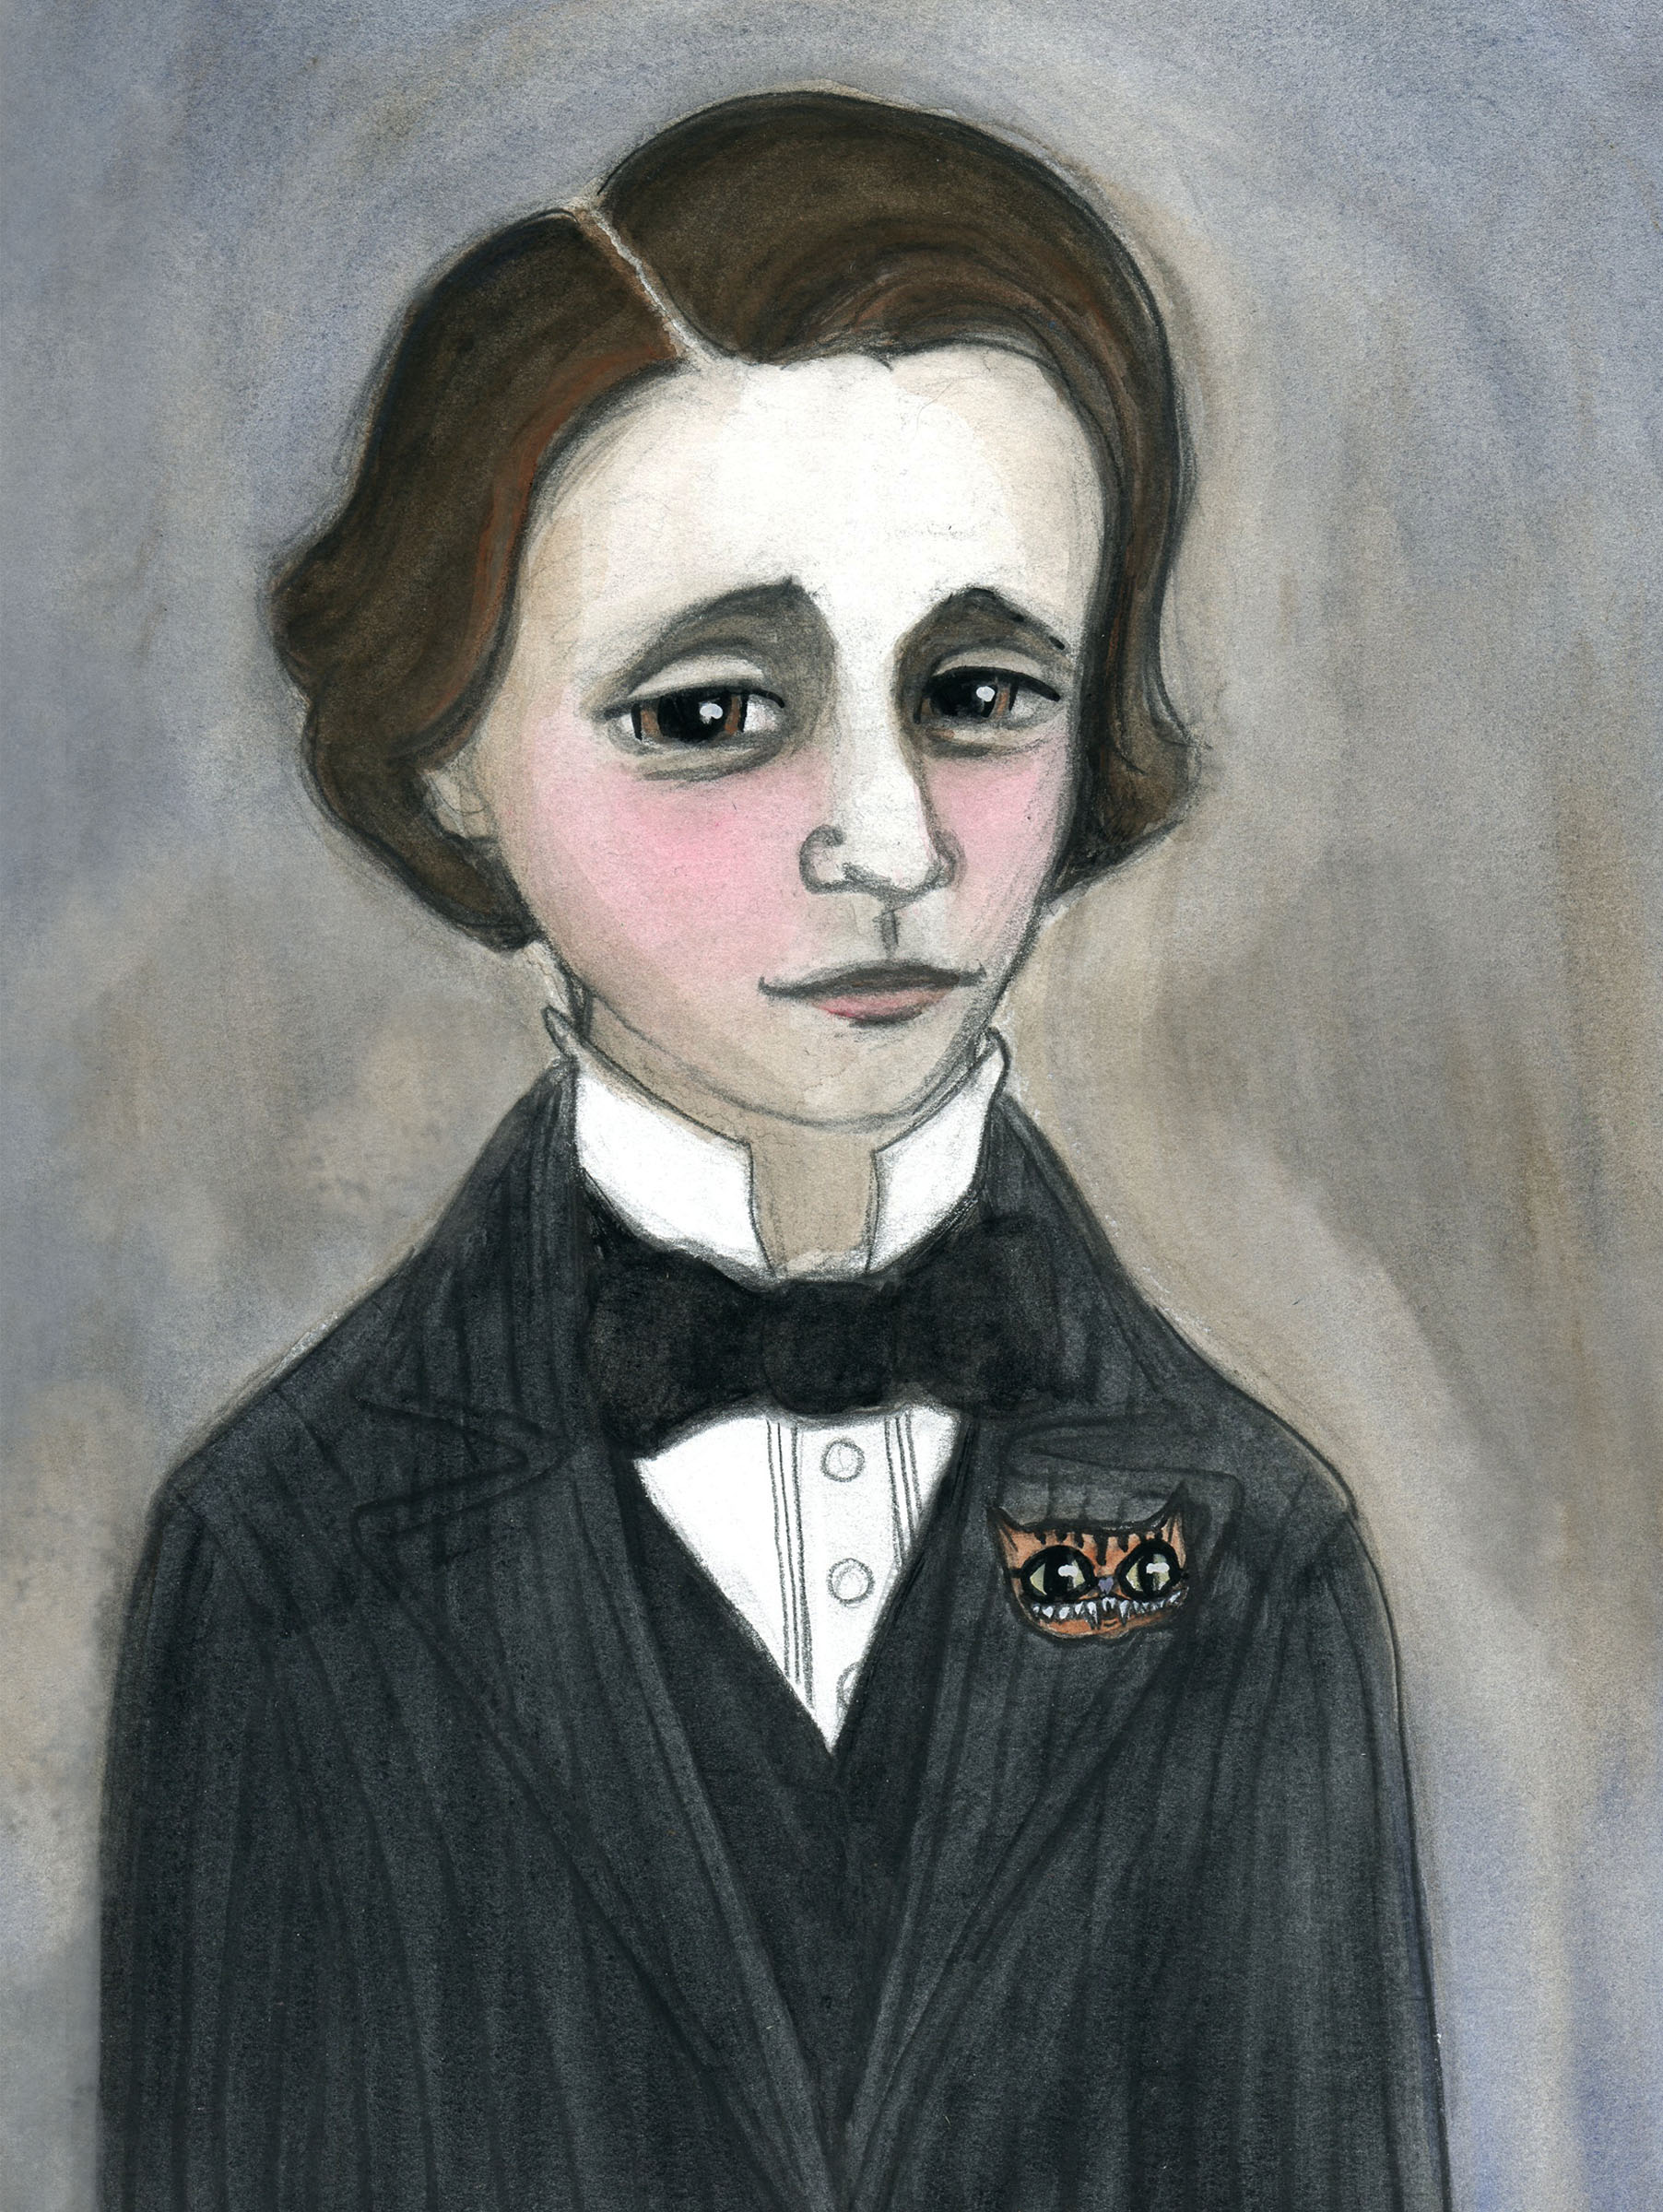 Lewis Carroll and the Cheshire Cat's Smile